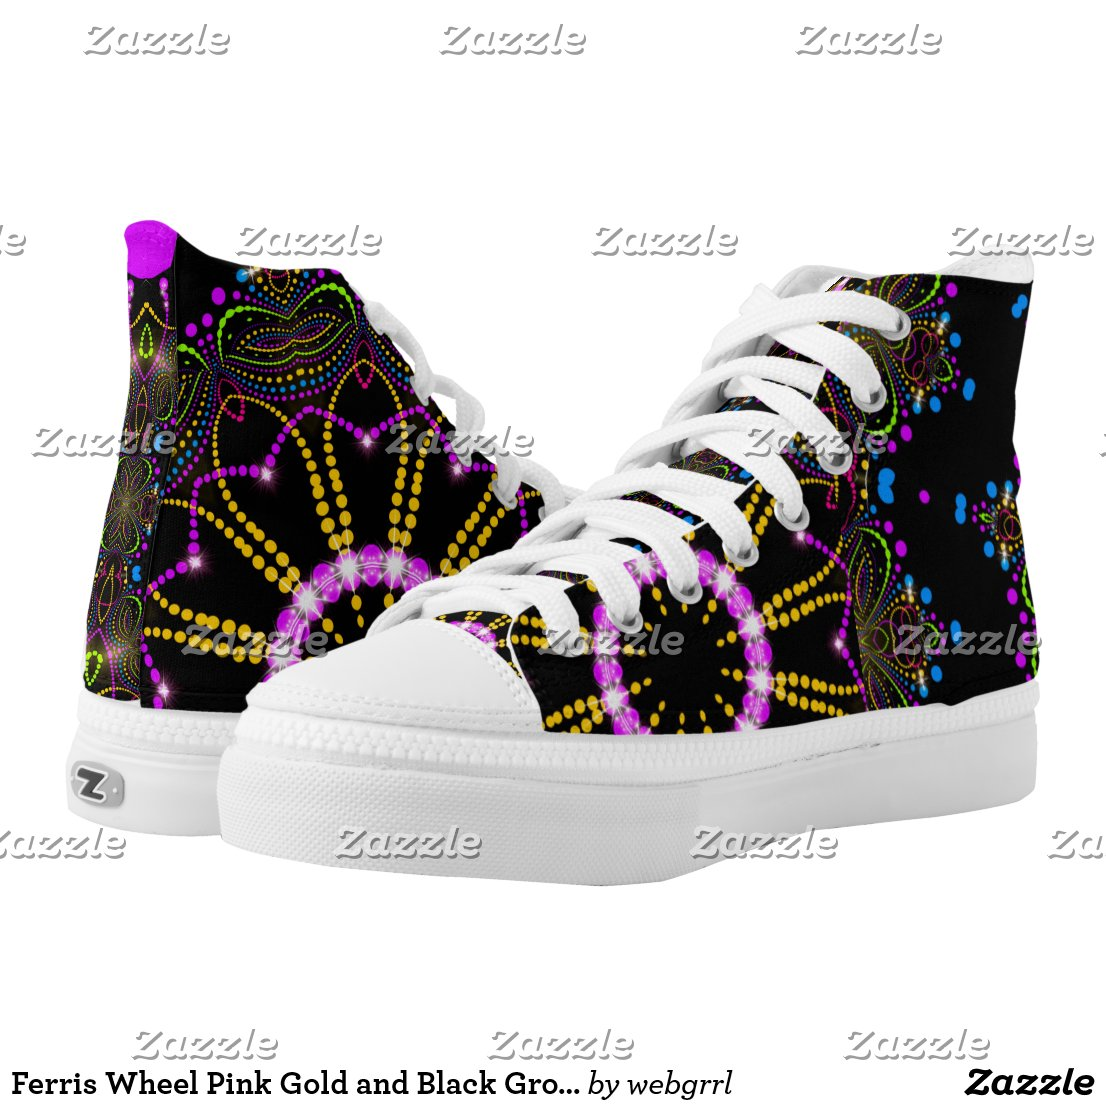 Ferris Wheel Pink Gold and Black Groovy Mandala High-Top Sneakers by webgrrl